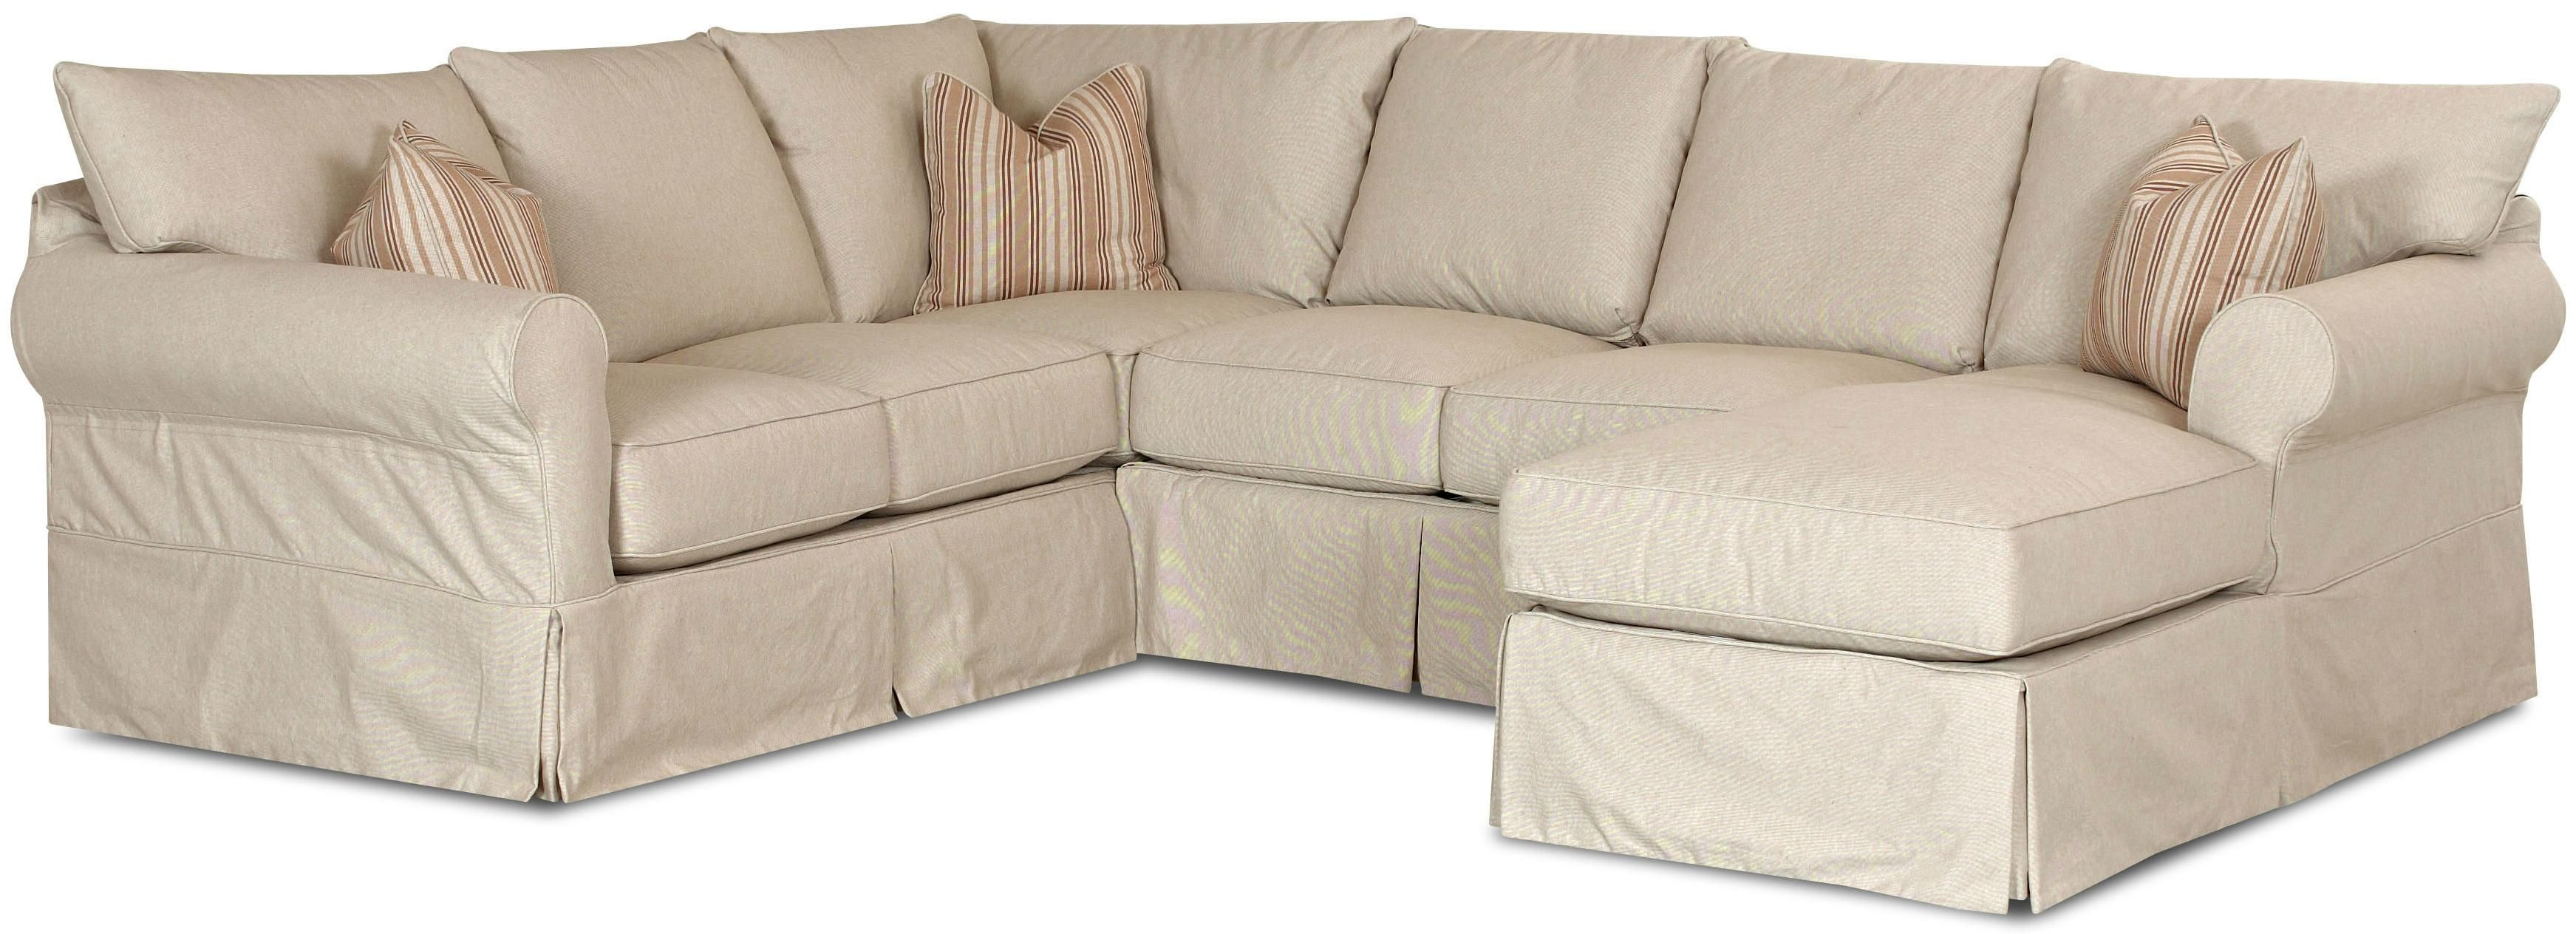 10 Sectional Sofa Cover Awesome And Also Lovely Sectional Sofa